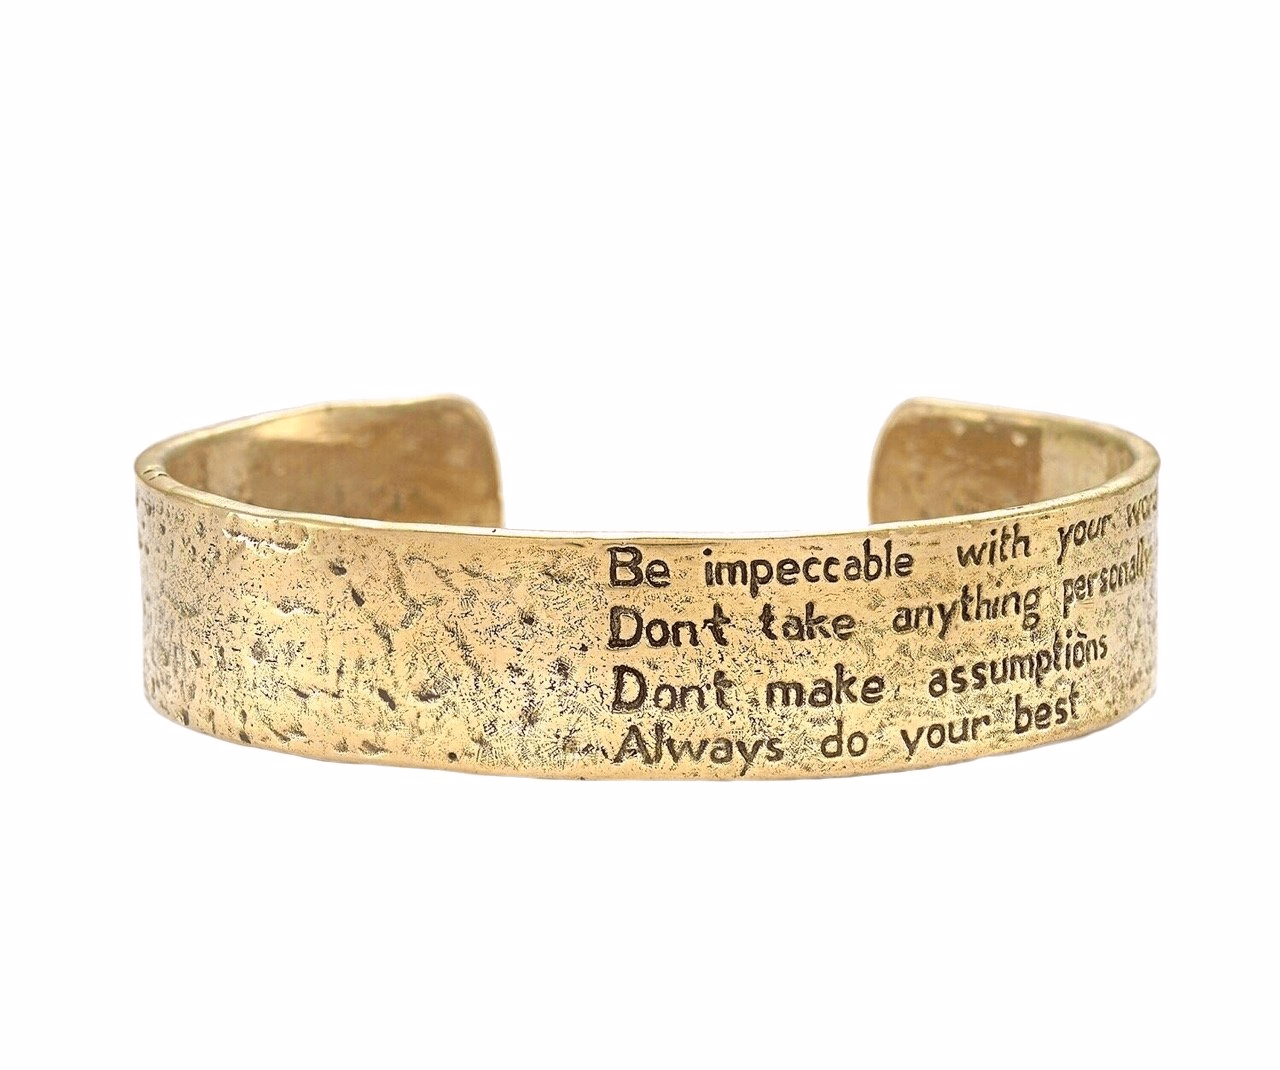 The Four Agreements Cuff Bracelet in Brass | Handcrafted | Inspirational Jewelry | Jewelry Evolution8 | Made in Bali